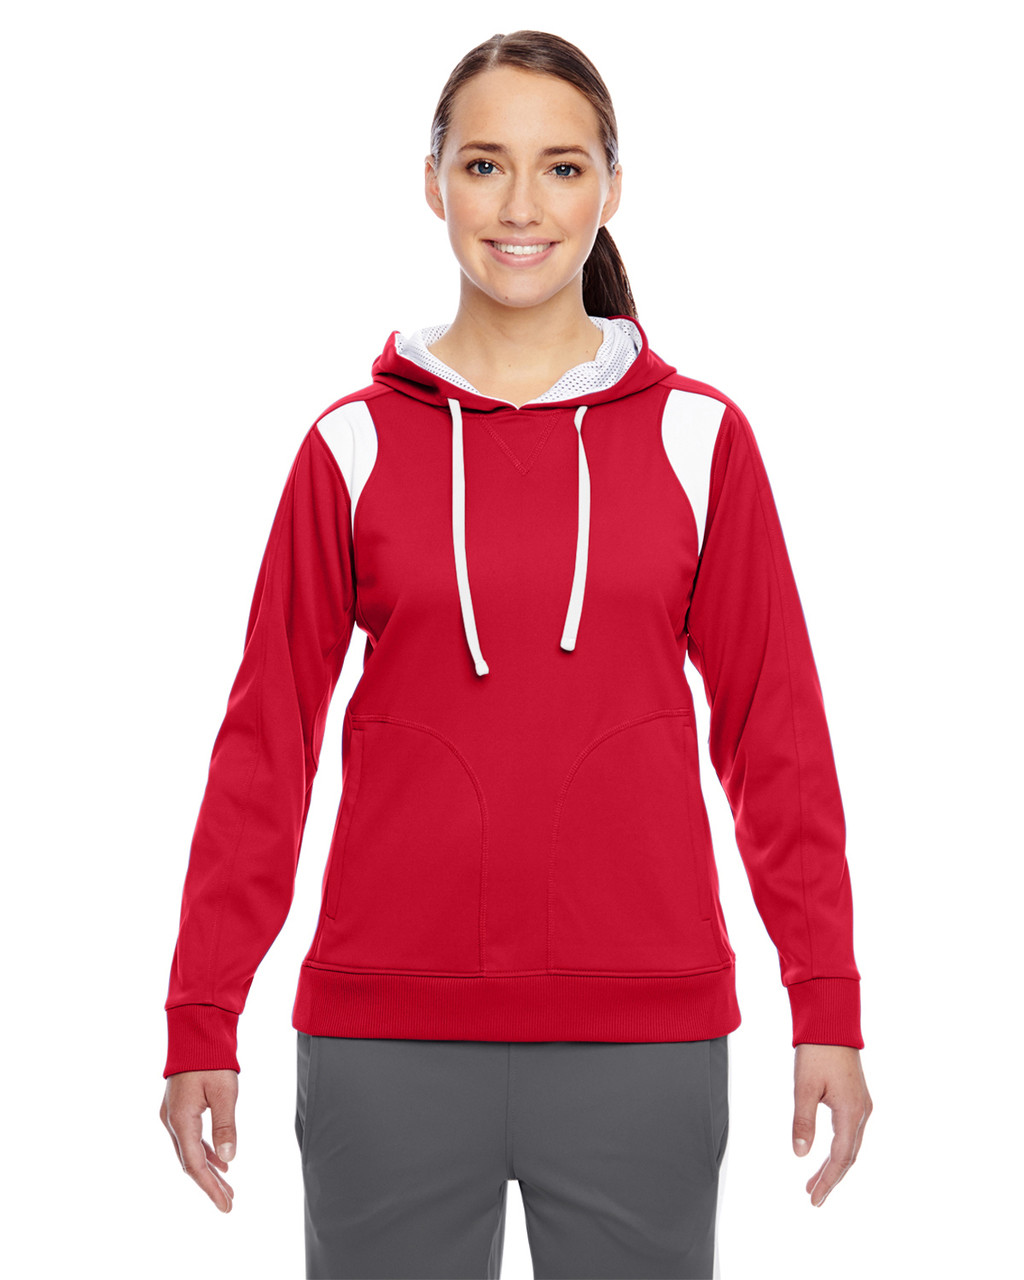 Red/White - TT30W Team 365 Ladies' Elite Performance Hoodie | Blankclothing.ca